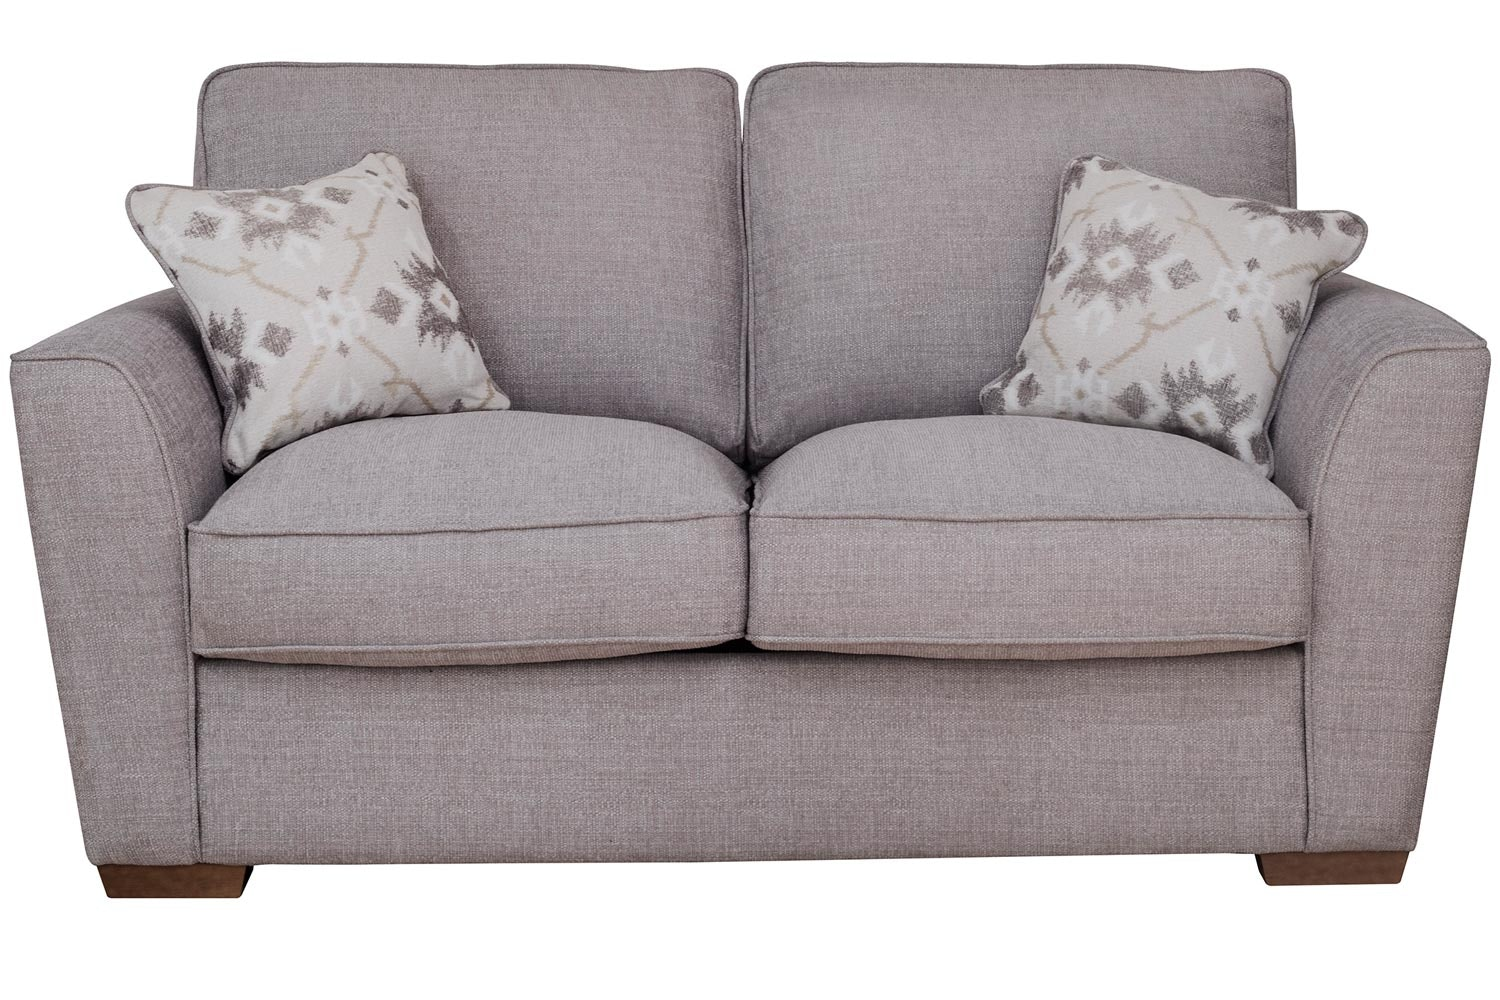 Fantasia 2 Seater Sofabed